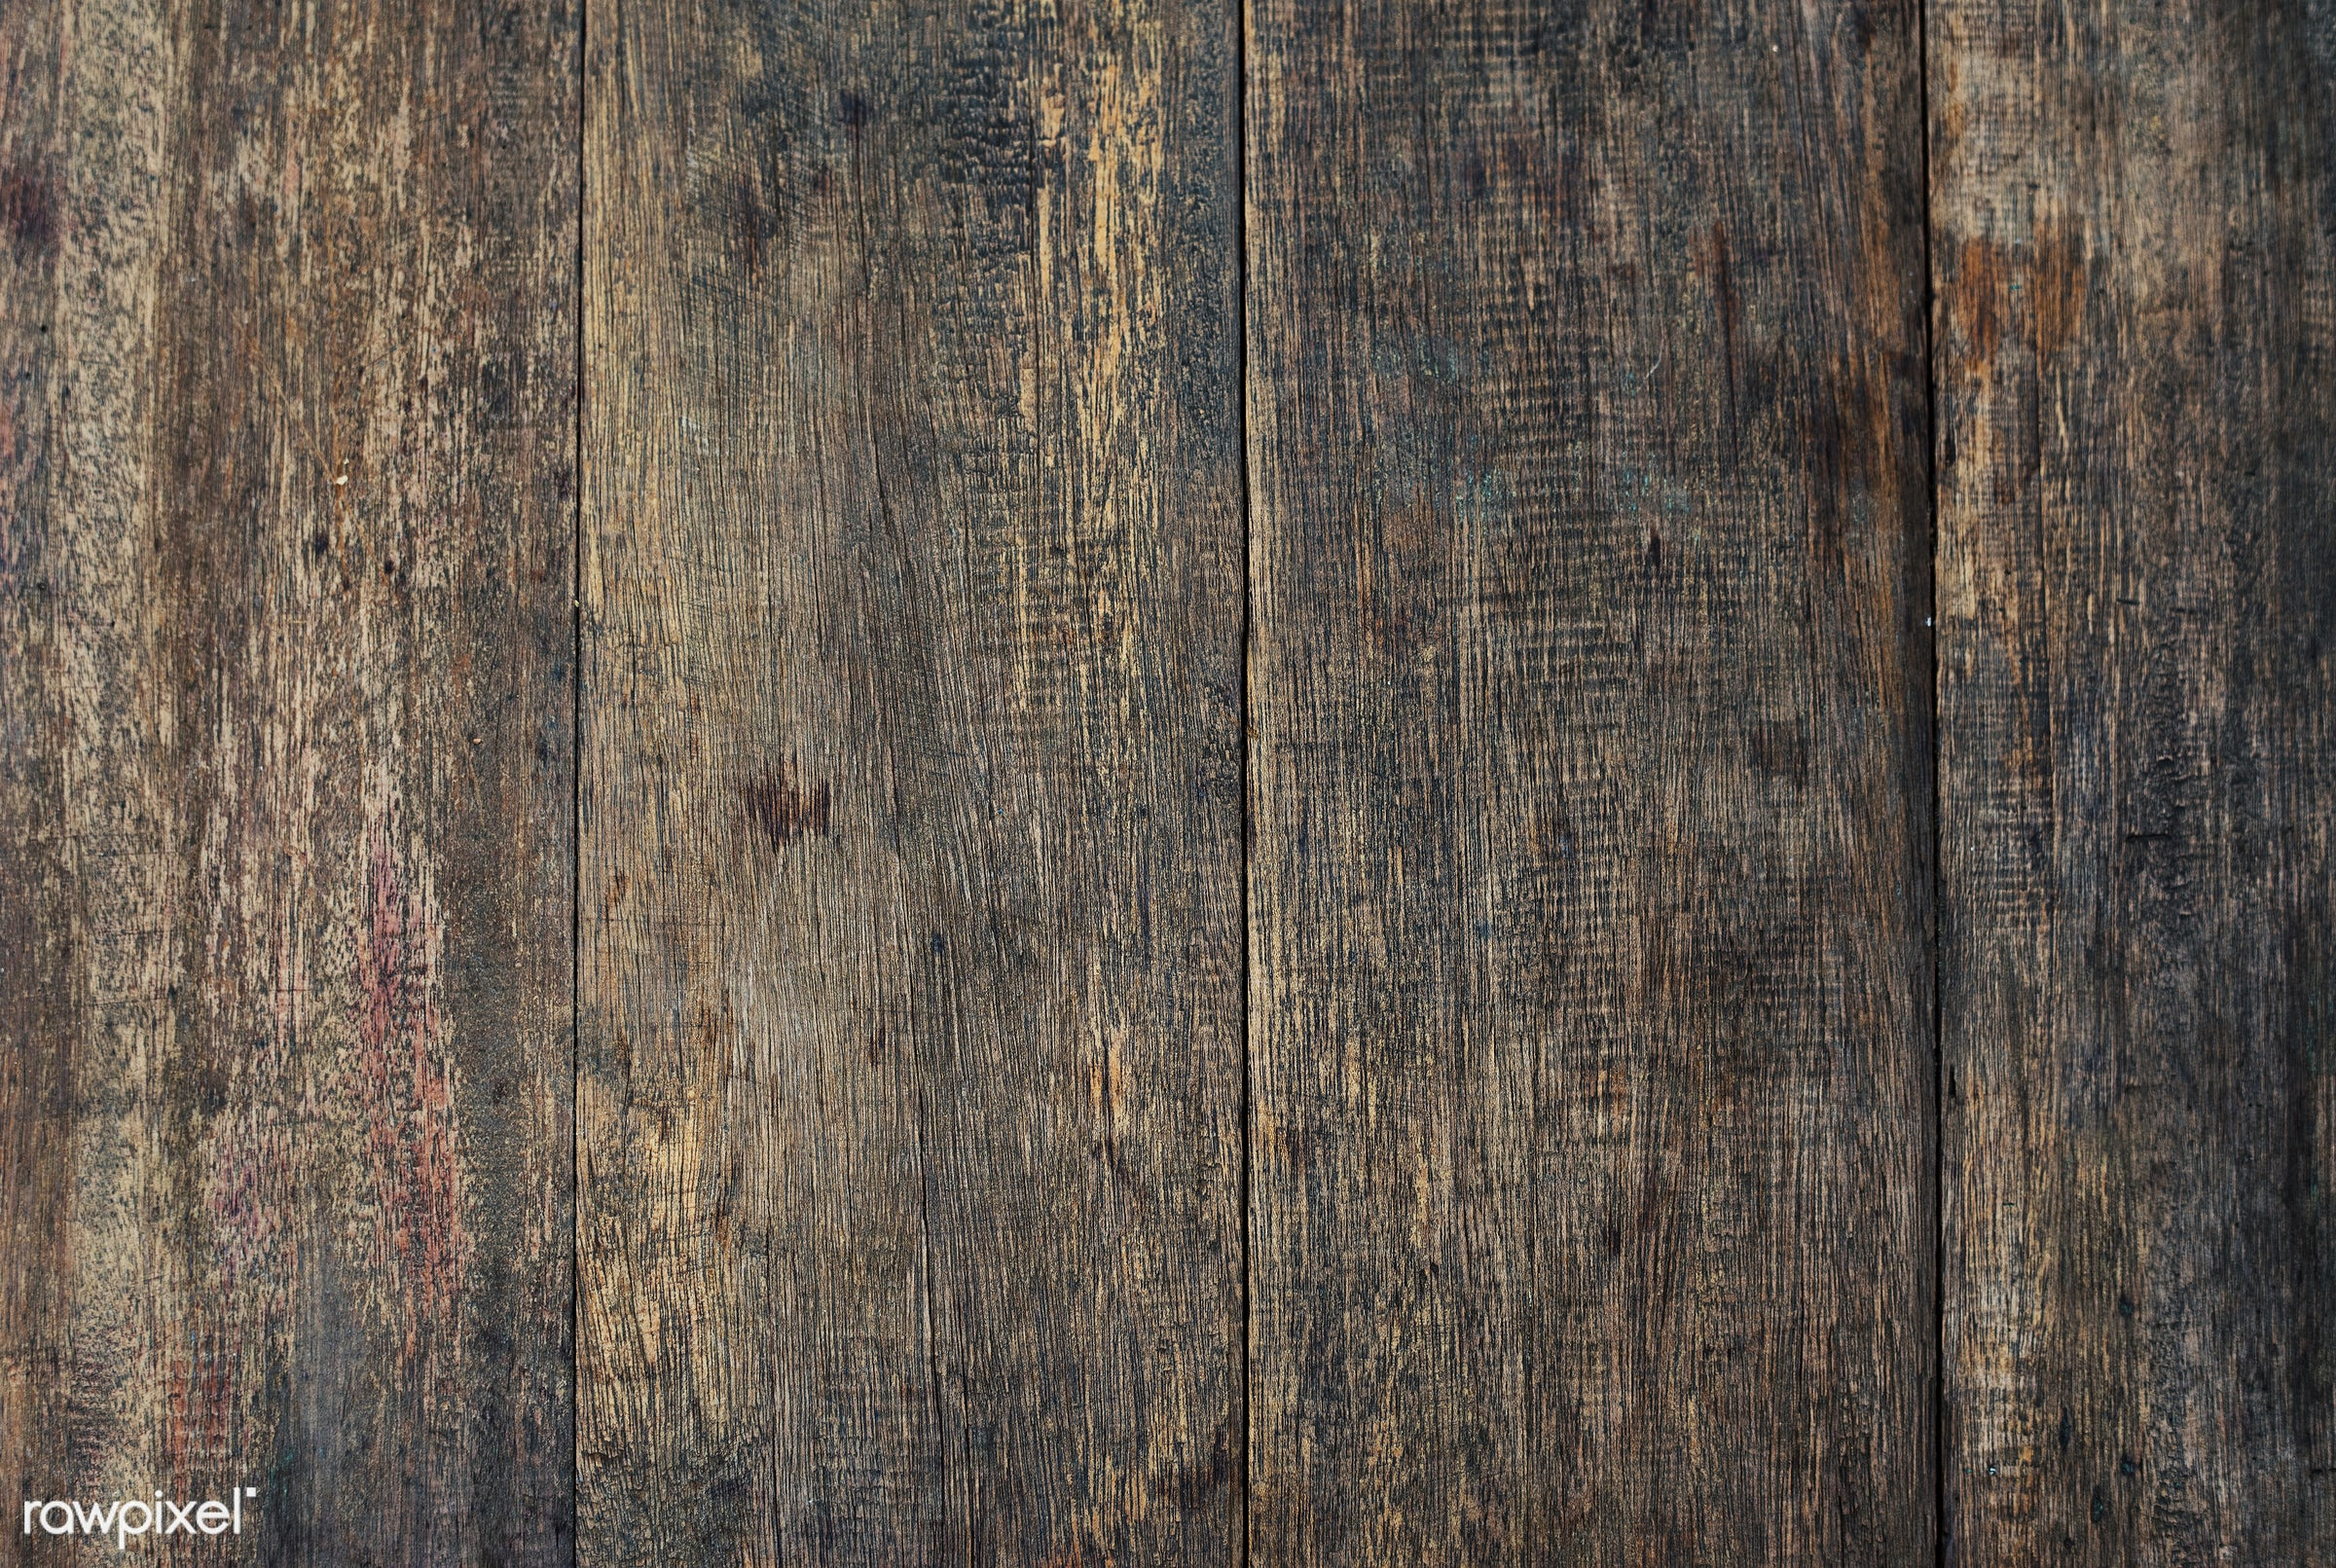 old, hardwood, surface, wood, decorative, carpentry, retro, plank, space, rustic, aged, decor, grunge, dark, empty, striped...